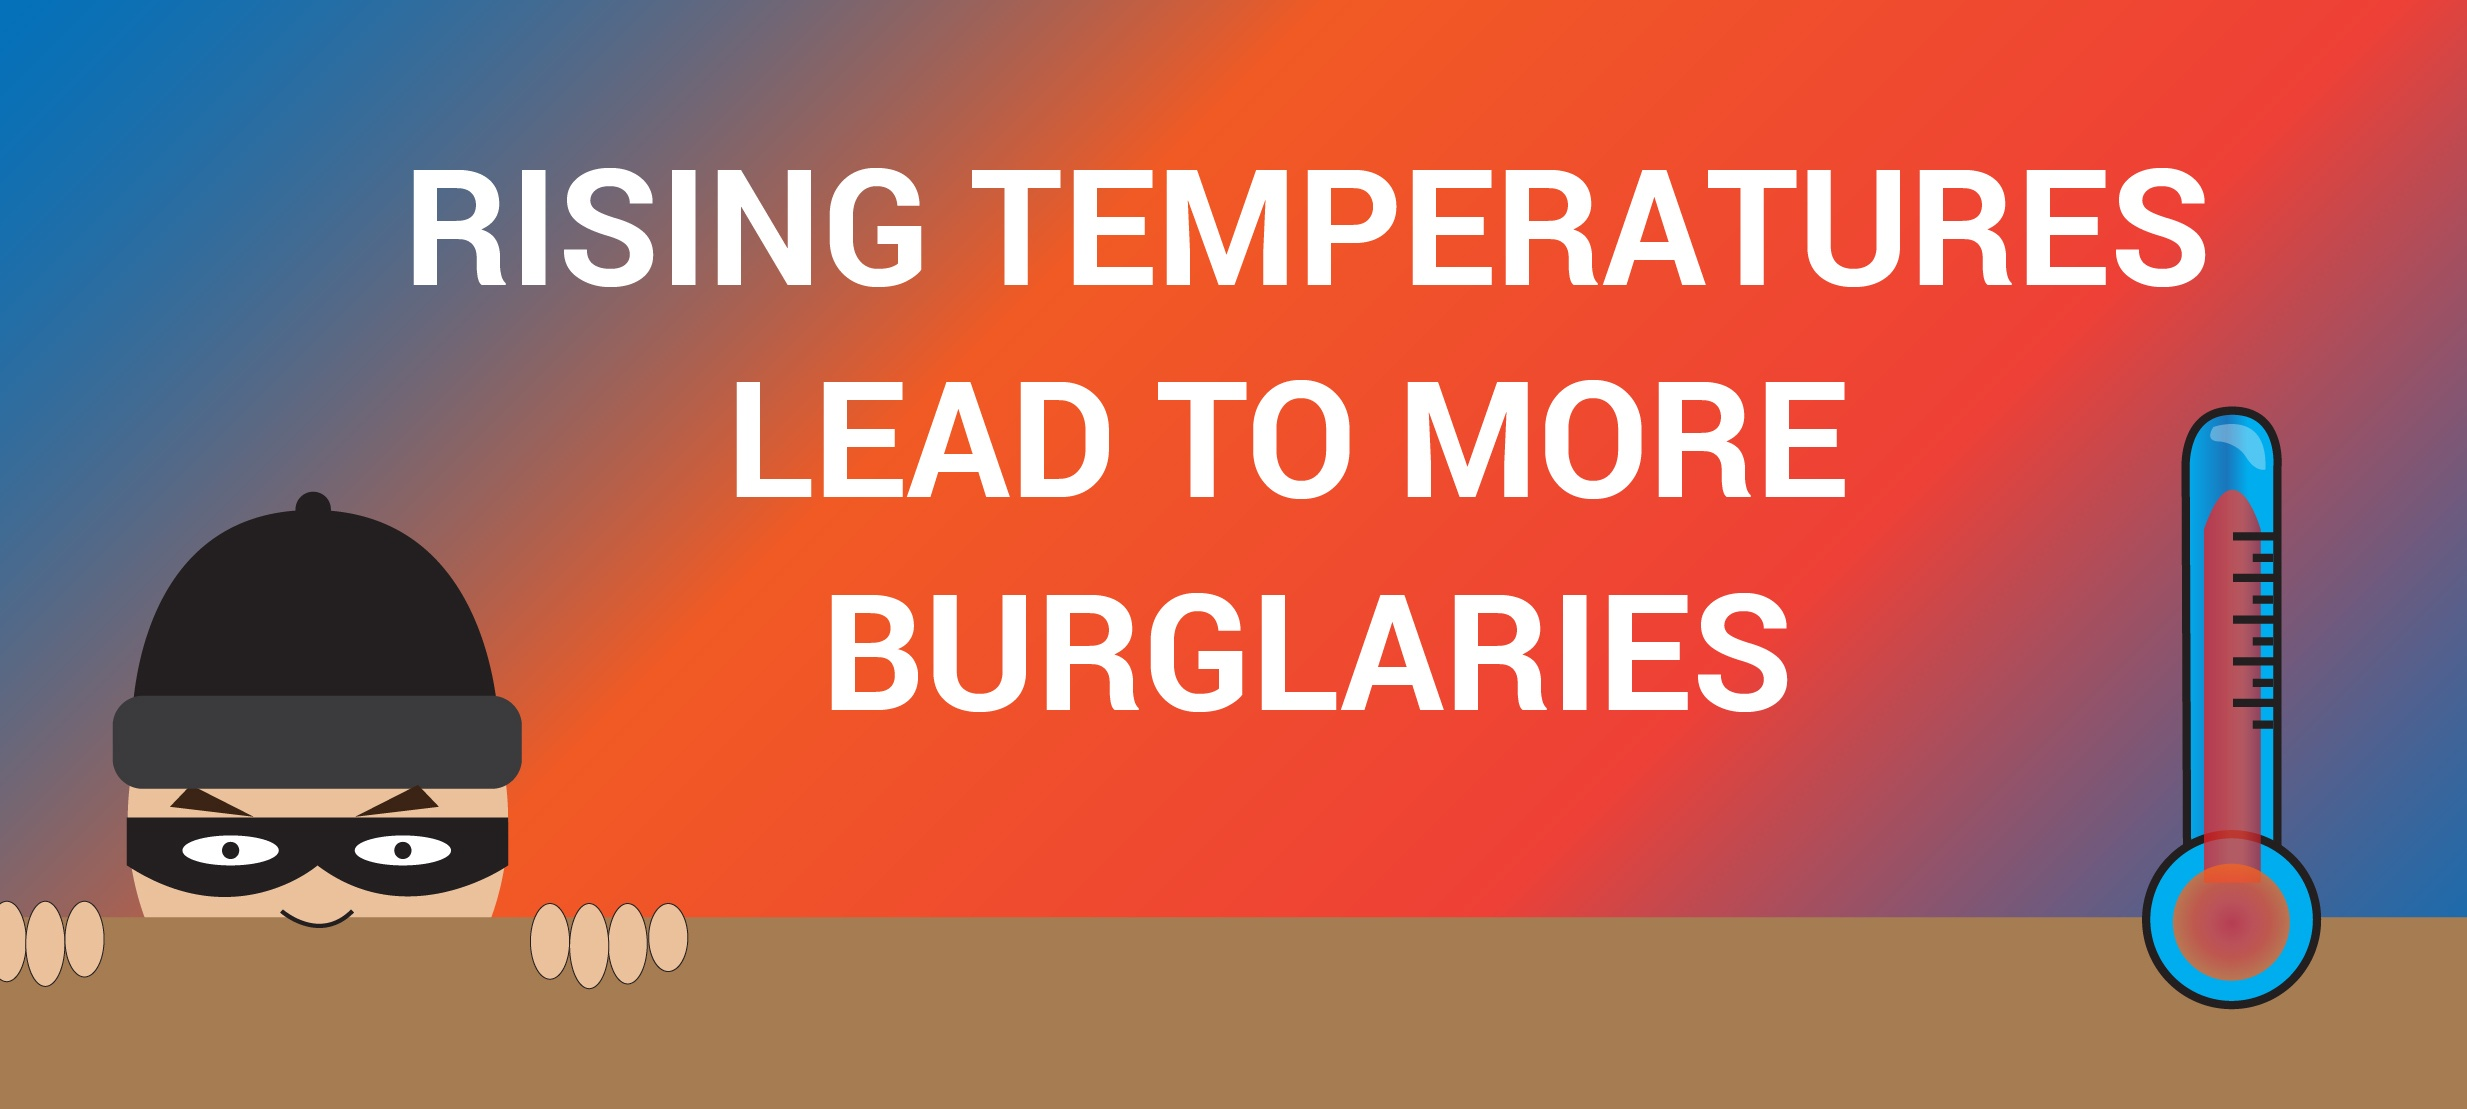 Warm weather leads to more burglaries